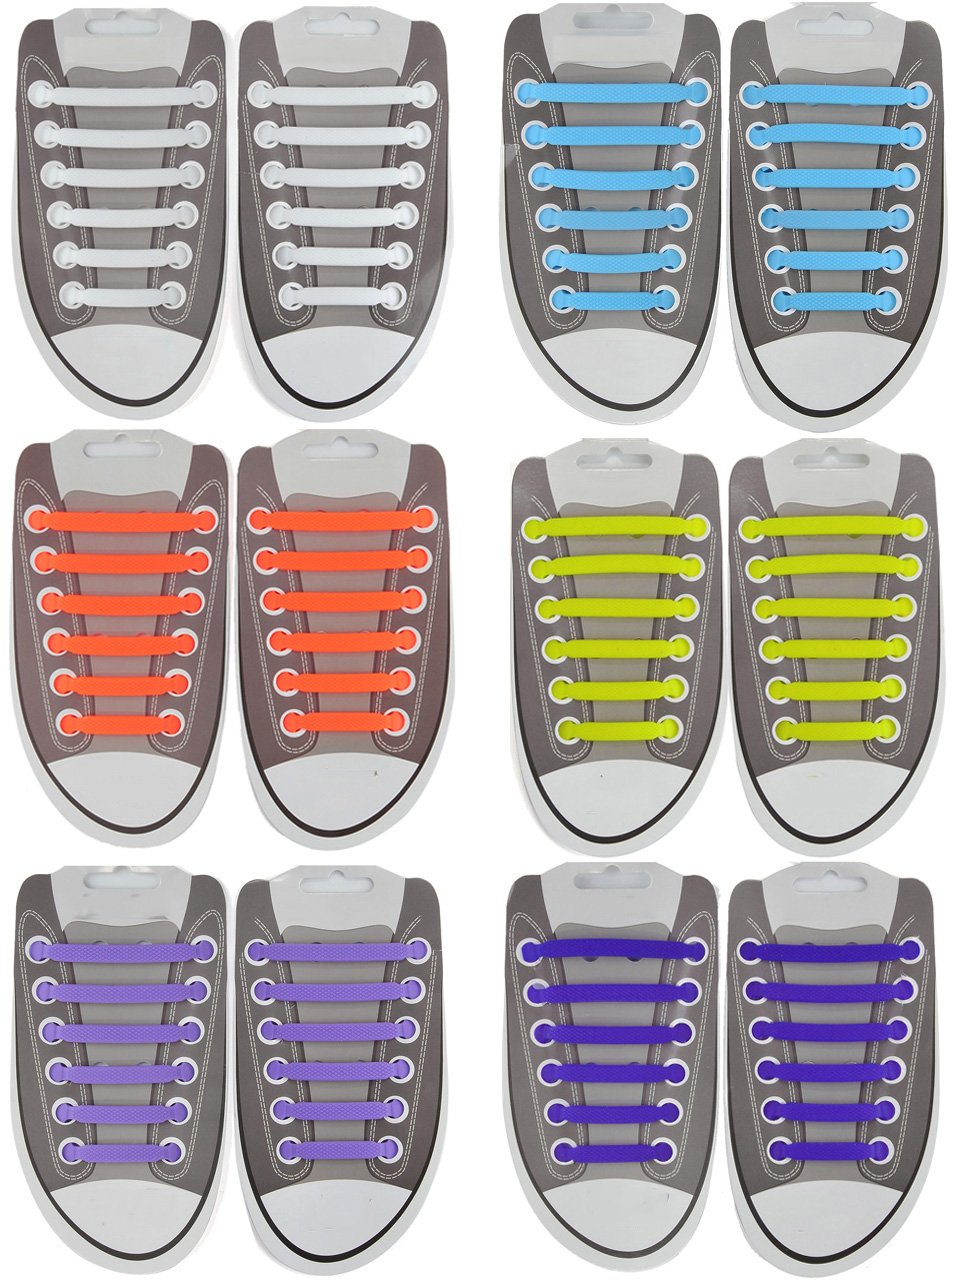 Ayliss No Tie Shoelaces for Kids & Adults Elastic Running Laces Easy to Install,Mixed 6 Colors-72pcs